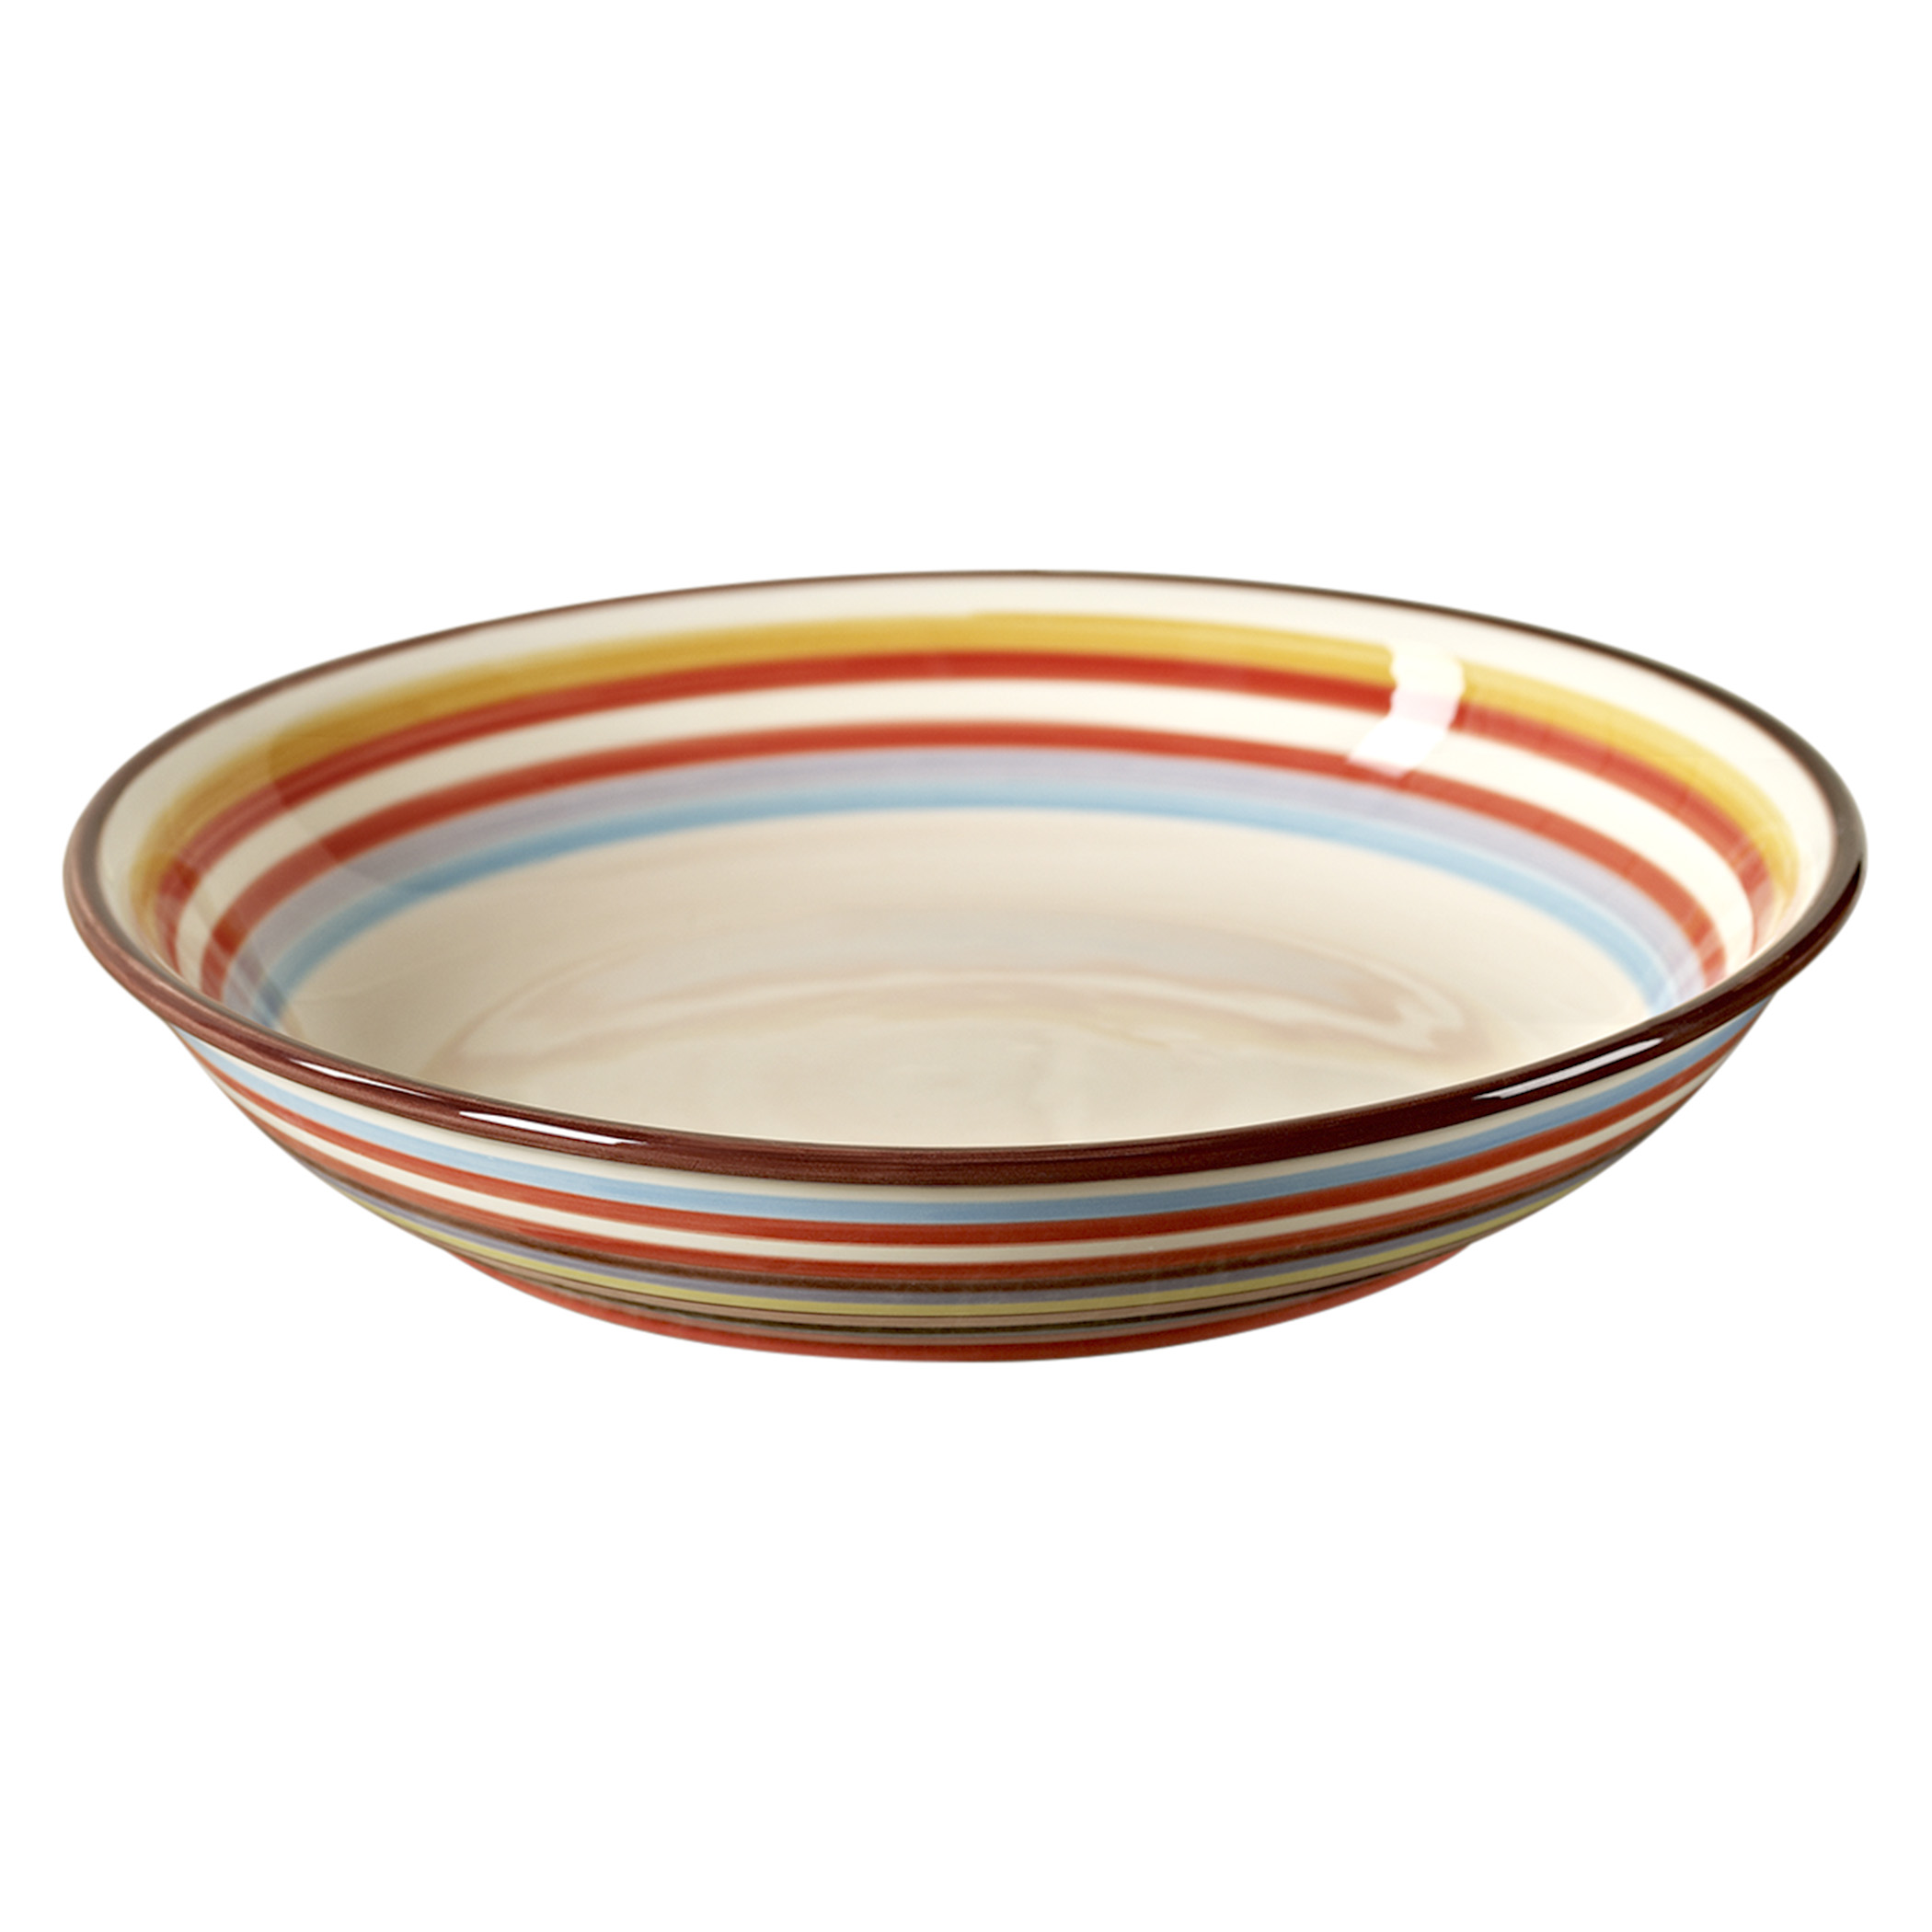 TMS-M6840-EC- 13.25 Inch Serving Bowl by Tabletops Lifesyles  sc 1 st  Tabletops Unlimited & Sedona 13 1/4 Inch Ceramic Serving Bowl by Tabletops Lifesyles ...